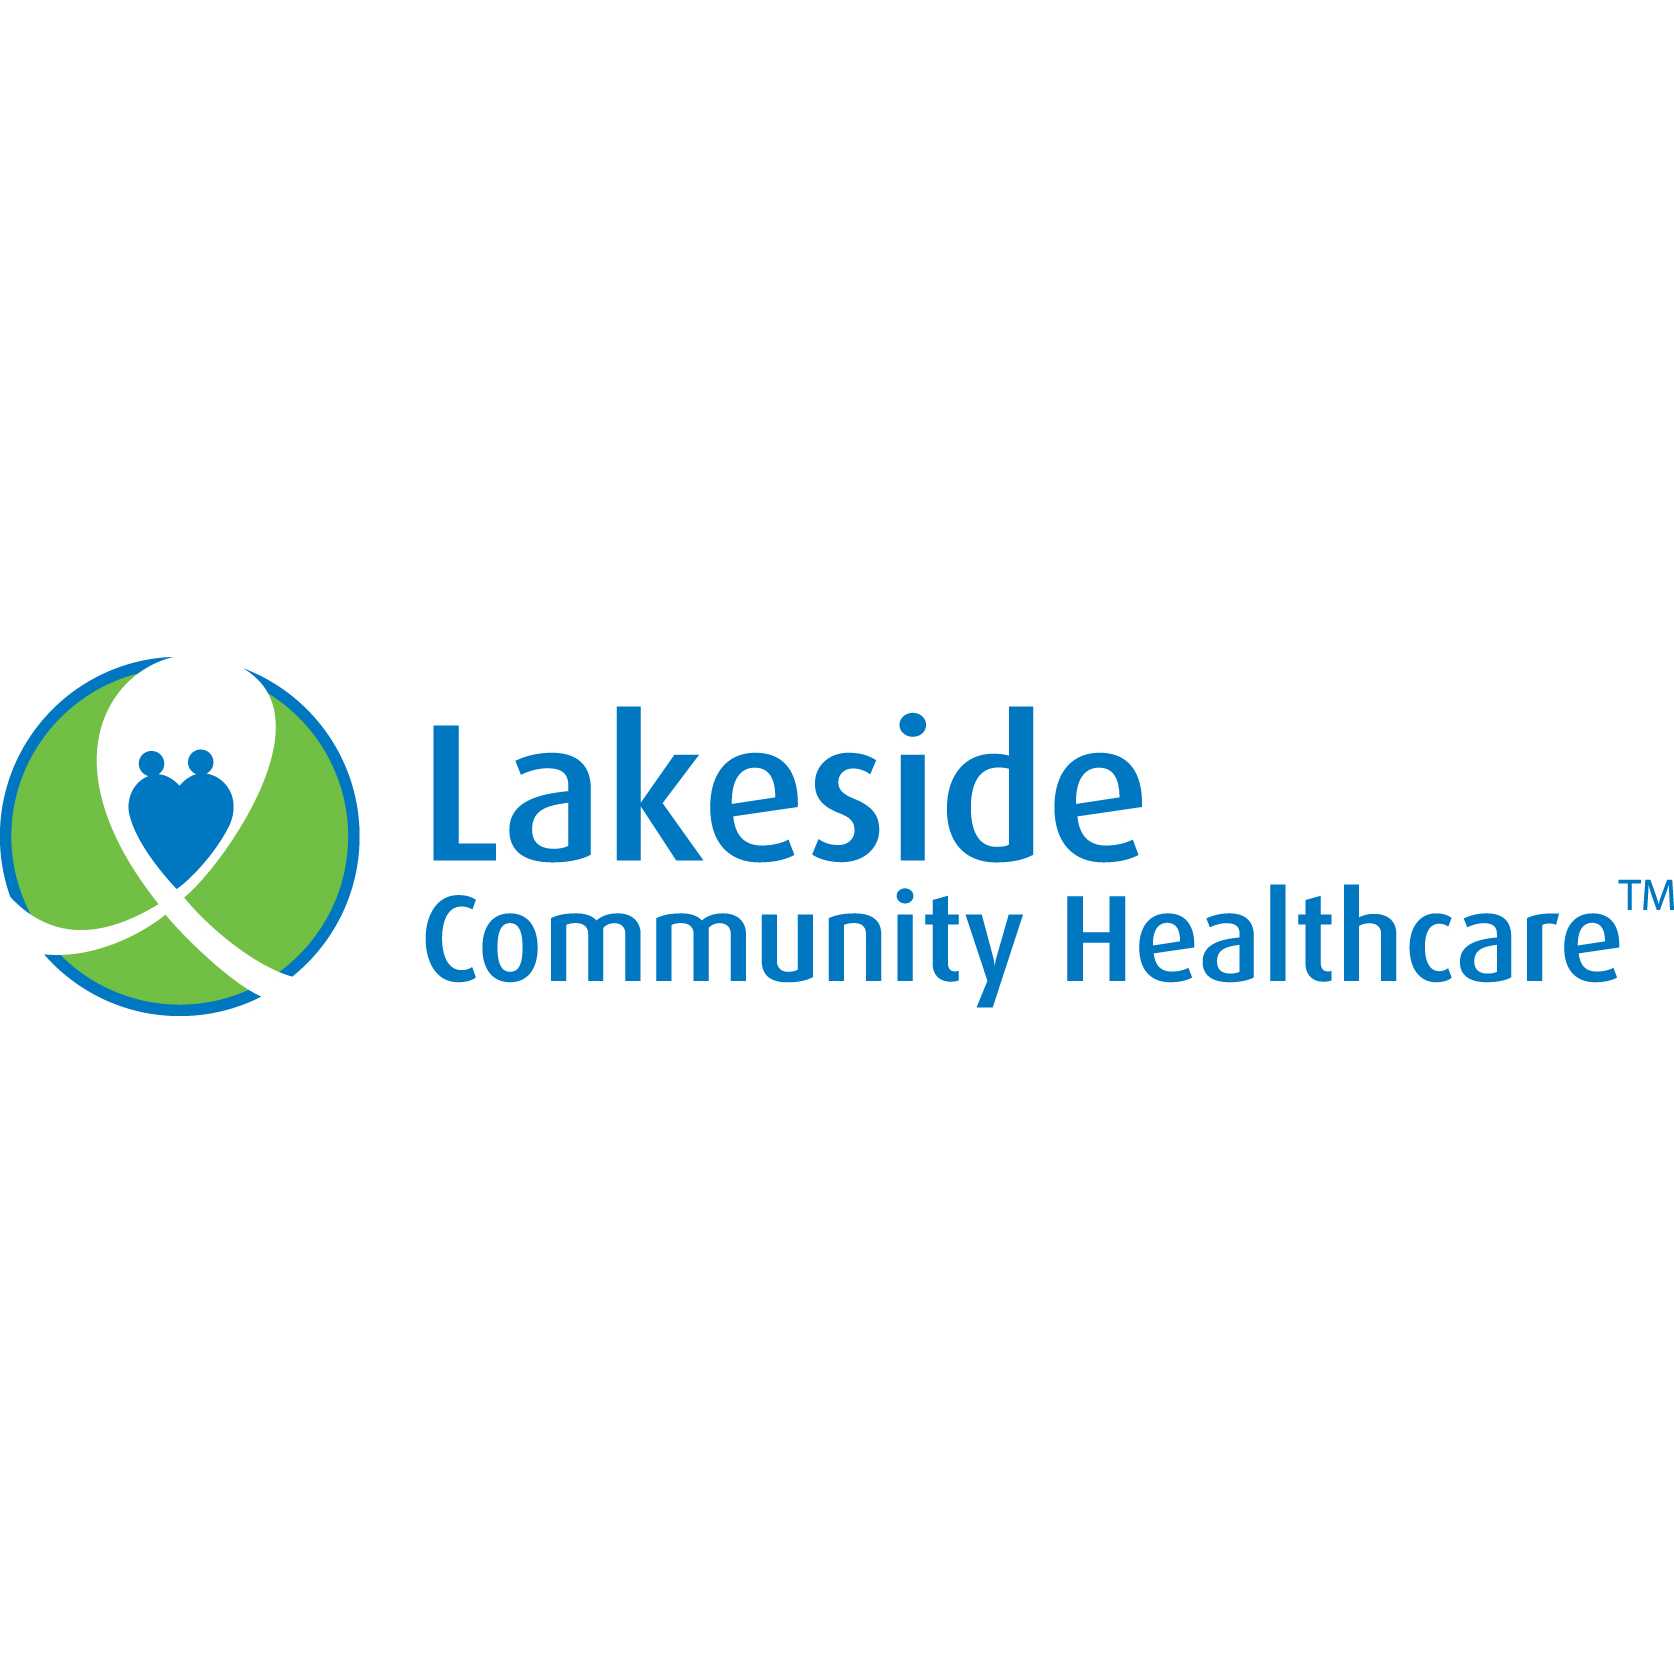 Lakeside Community Healthcare Primary Care - West Hills, CA - General or Family Practice Physicians